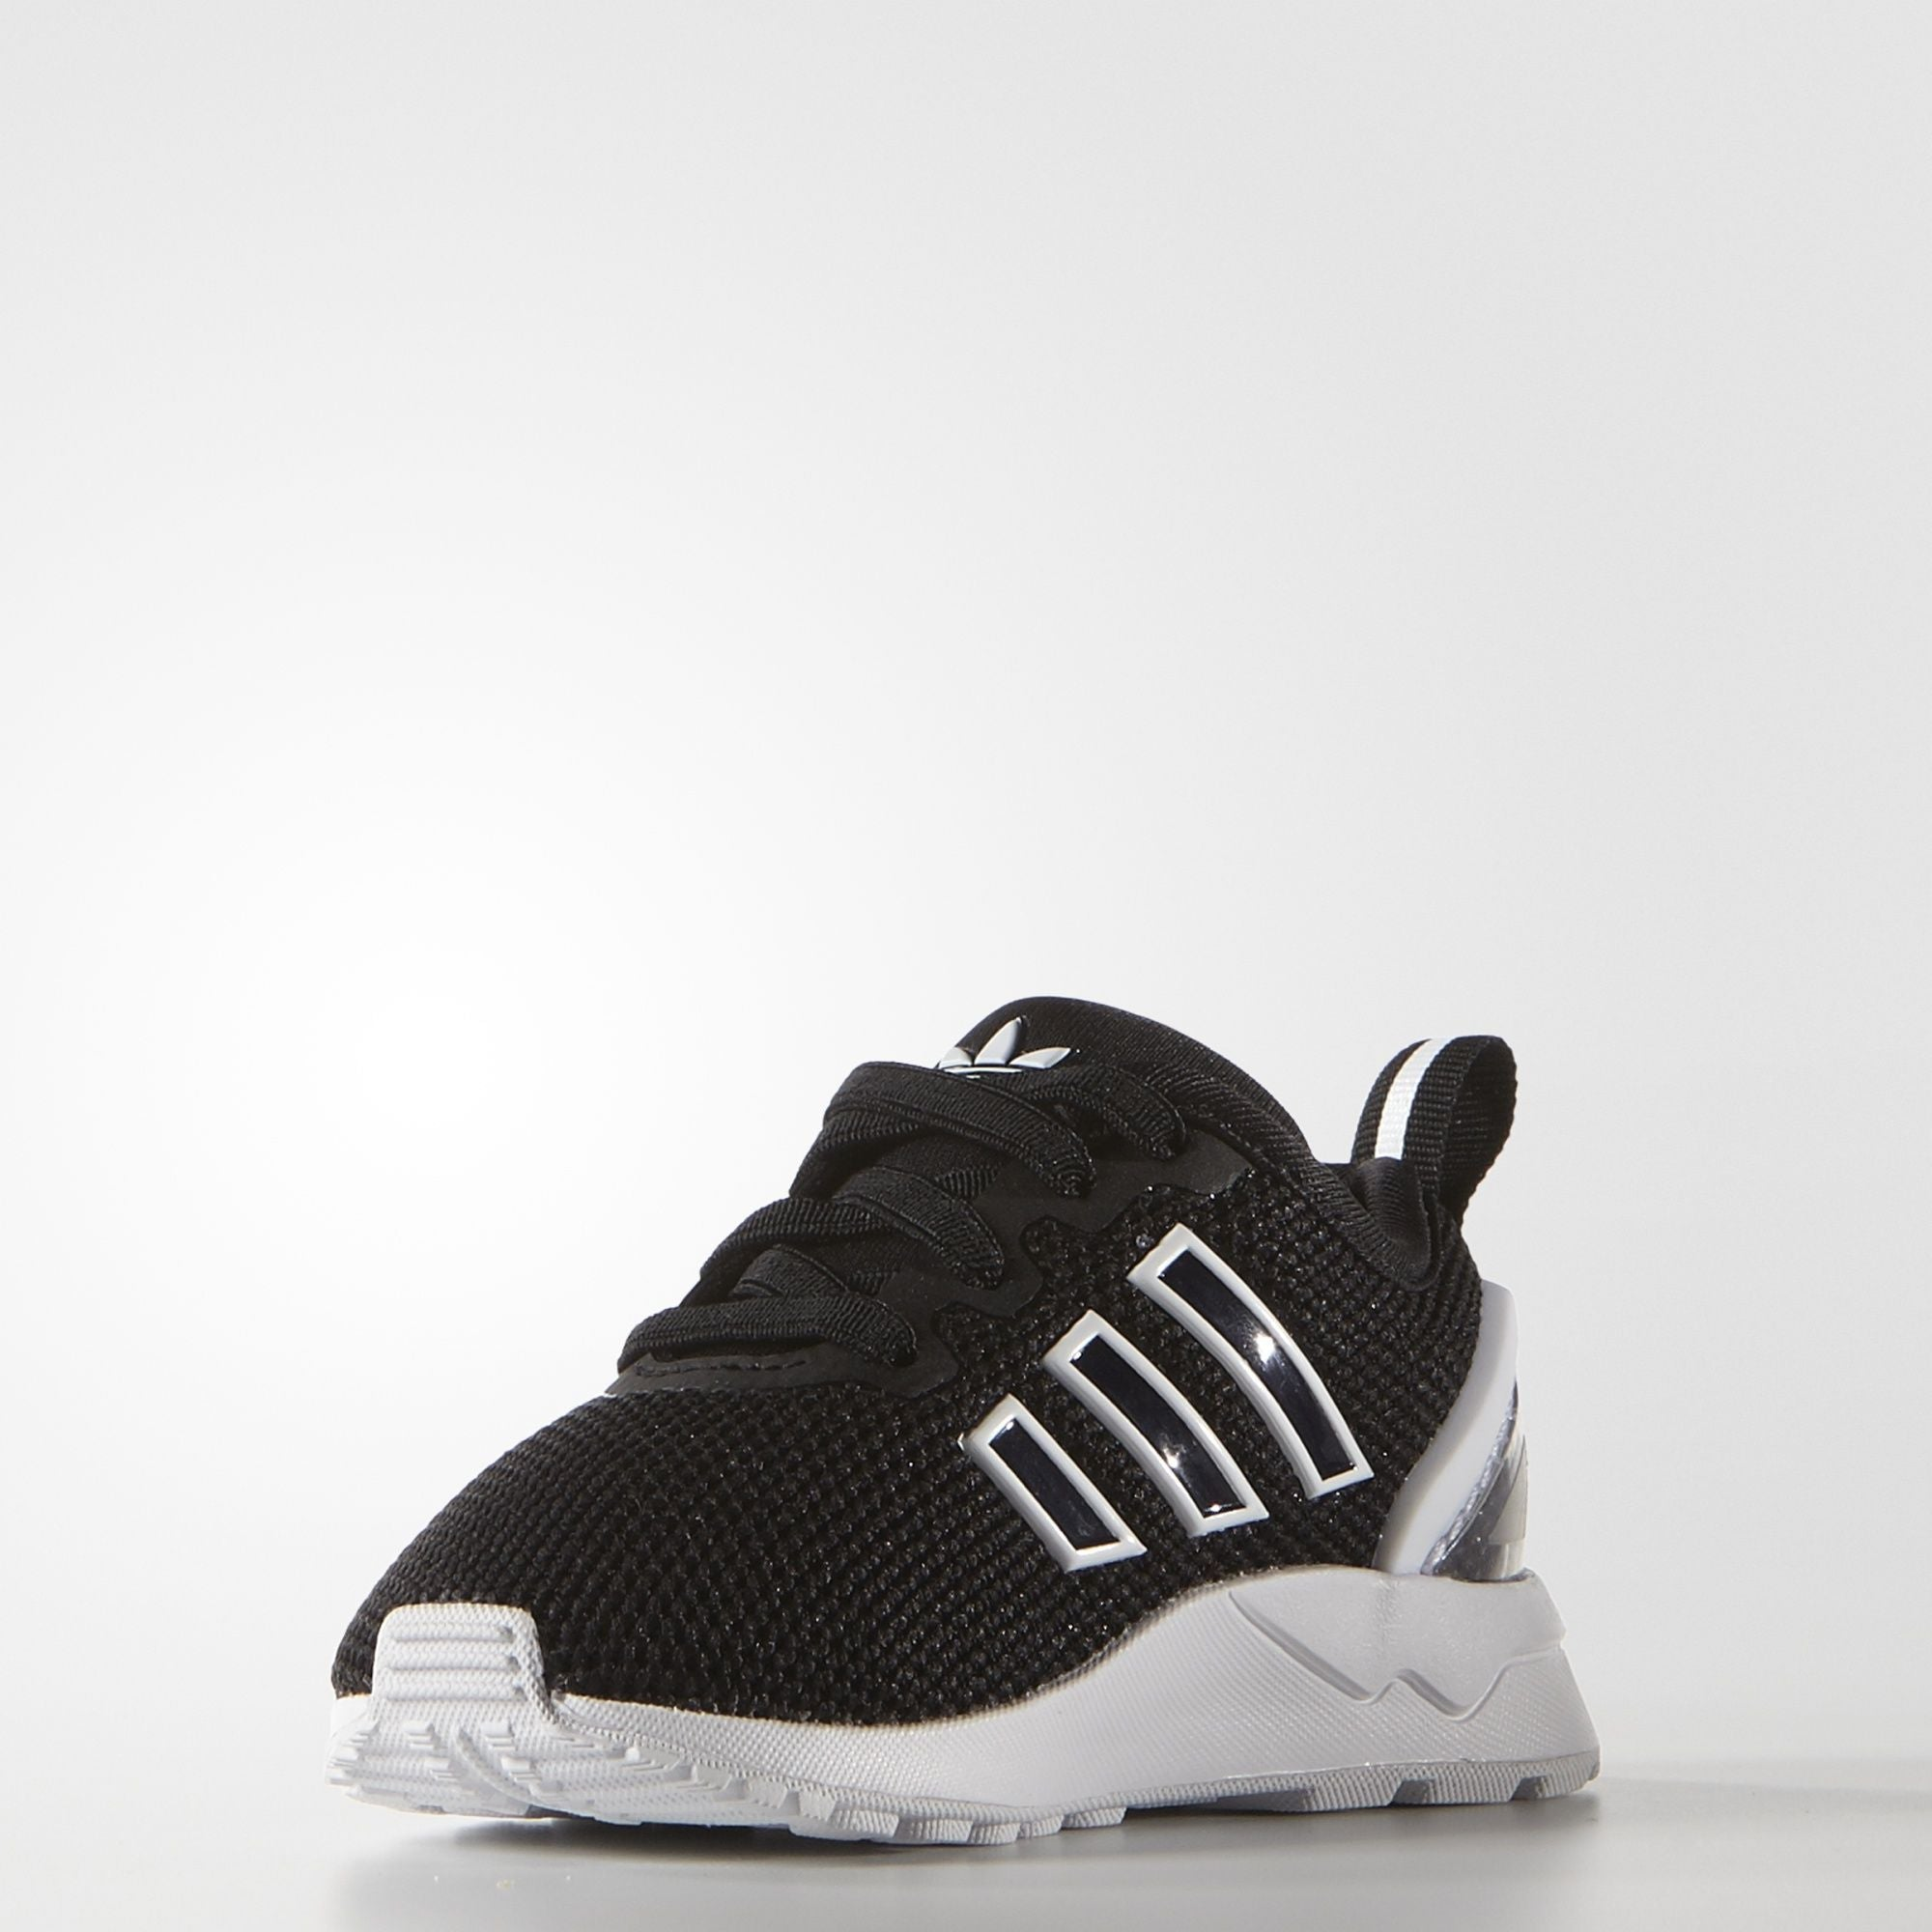 cacfe6c08 adidas ZX Flux Adv Sneakers Black – Branded Feet